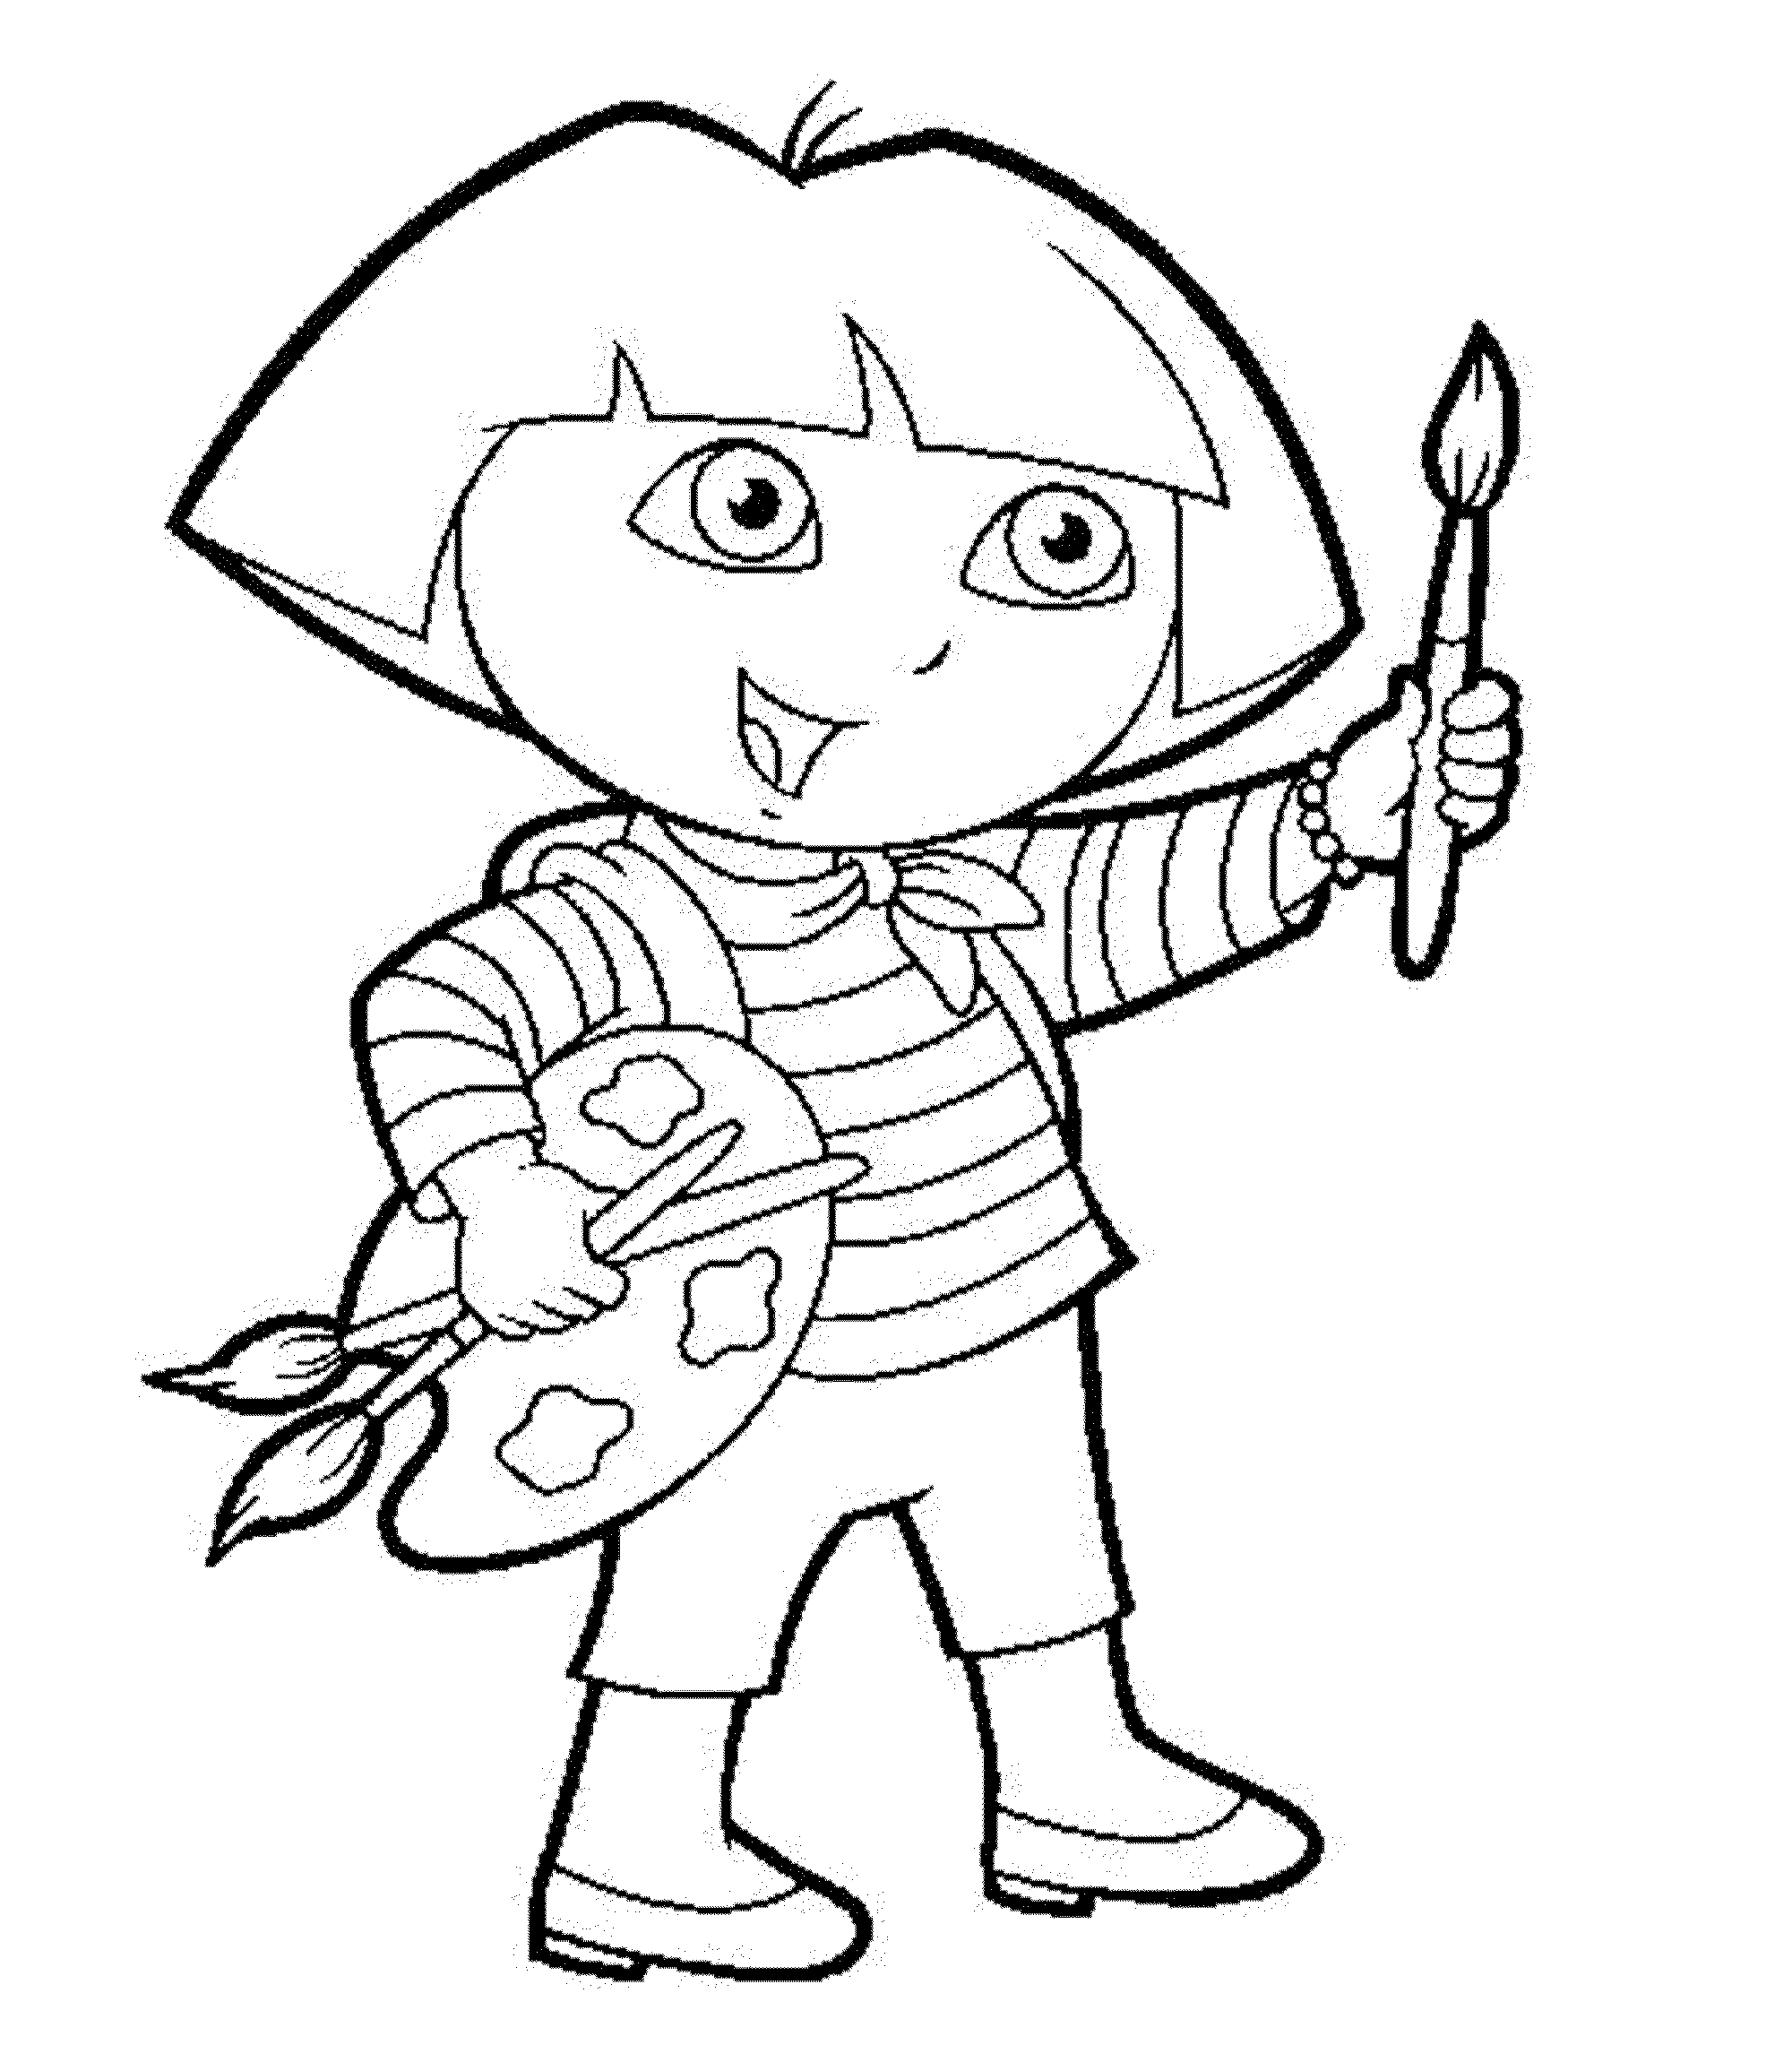 printable dora pictures free printable dora coloring pages for kids cool2bkids dora printable pictures